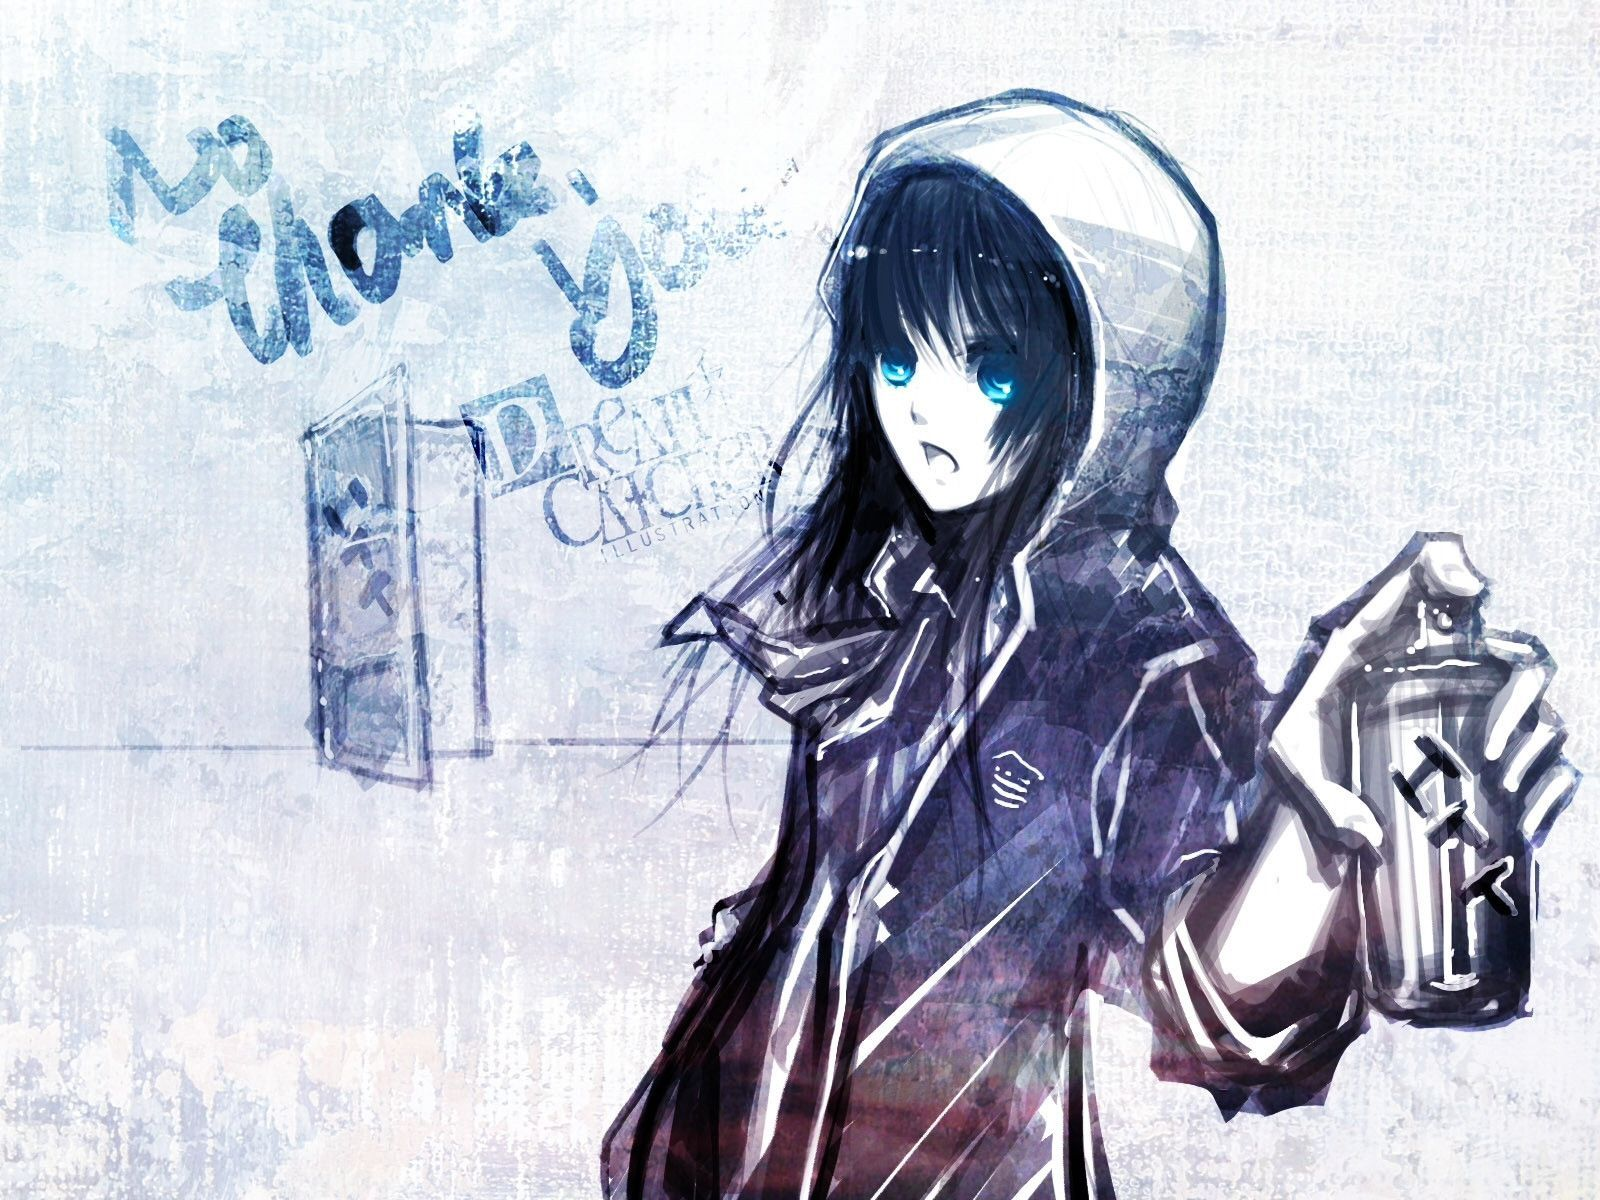 Emo Anime Wallpapers Wallpaper Cave Android Wallpaper Anime Hd Anime Wallpapers Emo Wallpaper